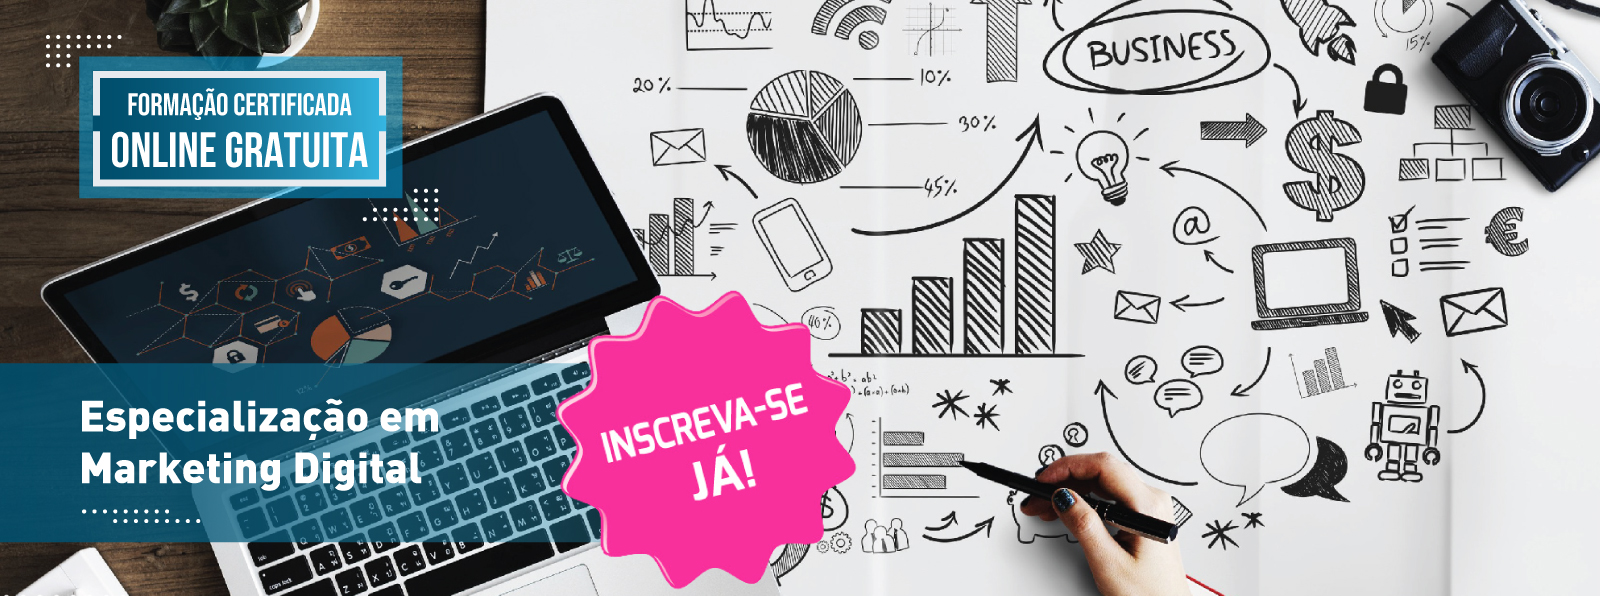 Especialização em Marketing Digital